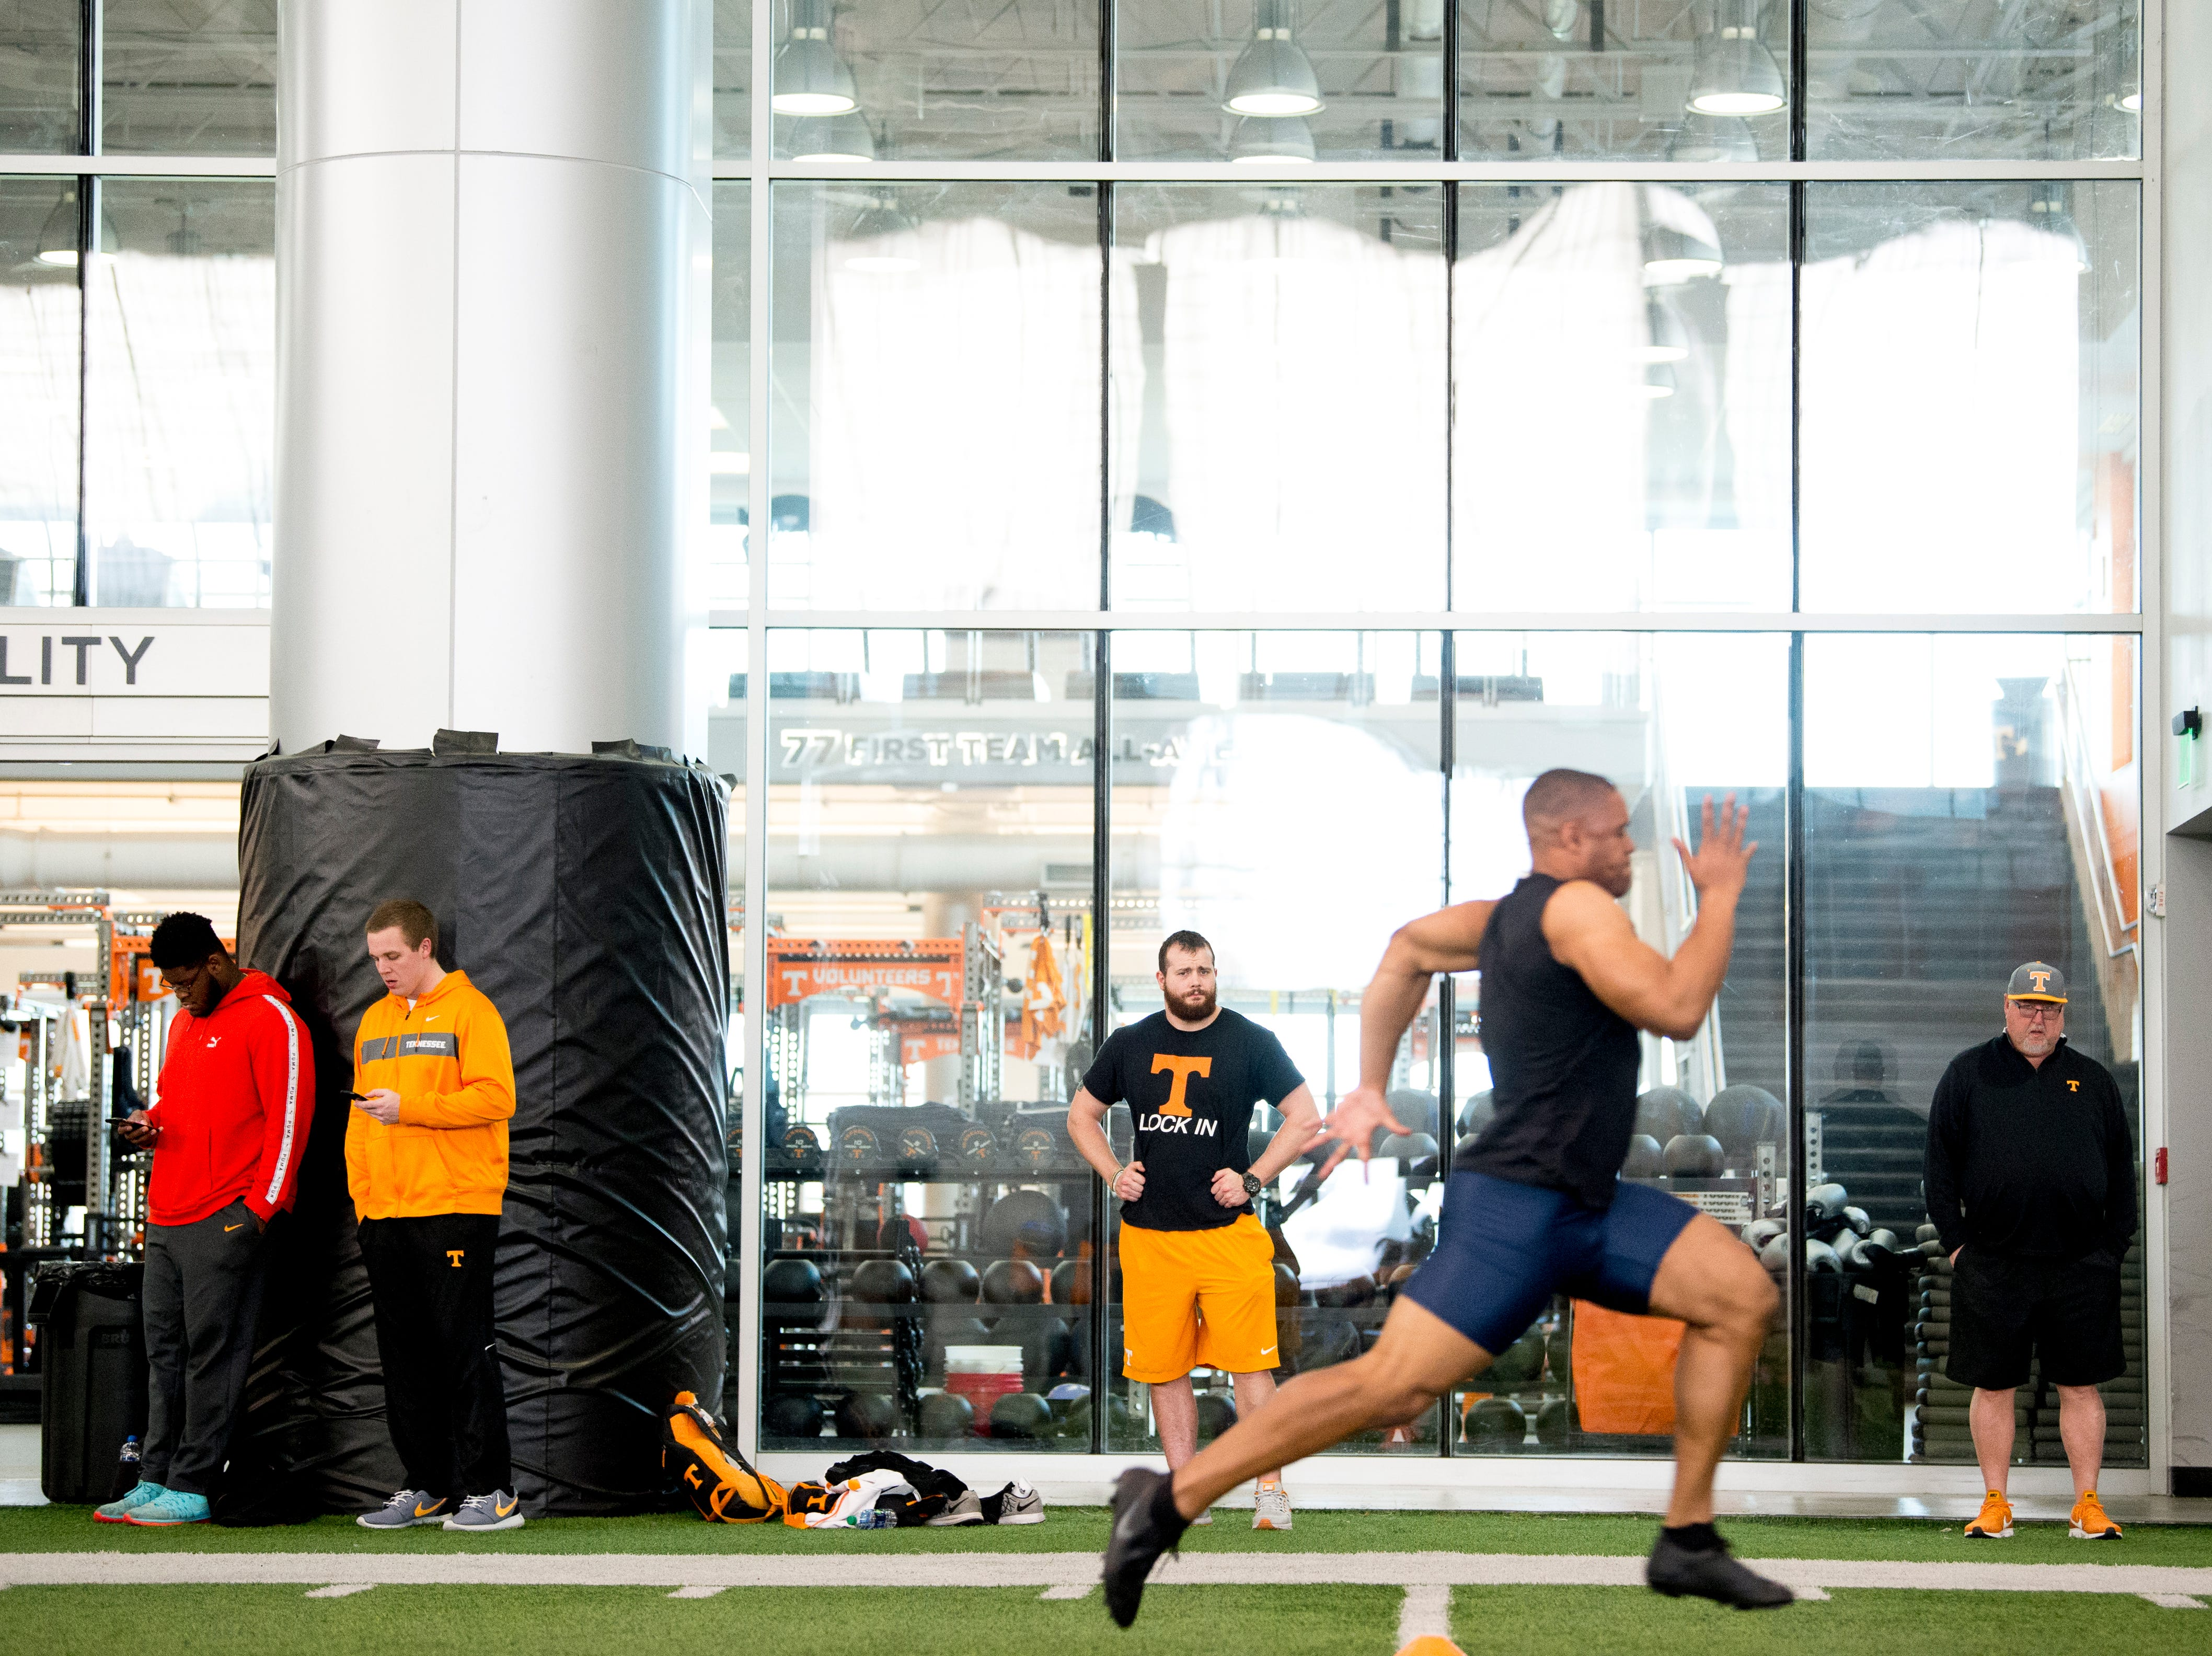 A prospect does the 40 yard dash at Tennessee Pro Day at Anderson Training Facility in Knoxville, Tennessee on Thursday, March 14, 2019. Draft prospects from Tennessee and other schools worked out before NFL scouts.